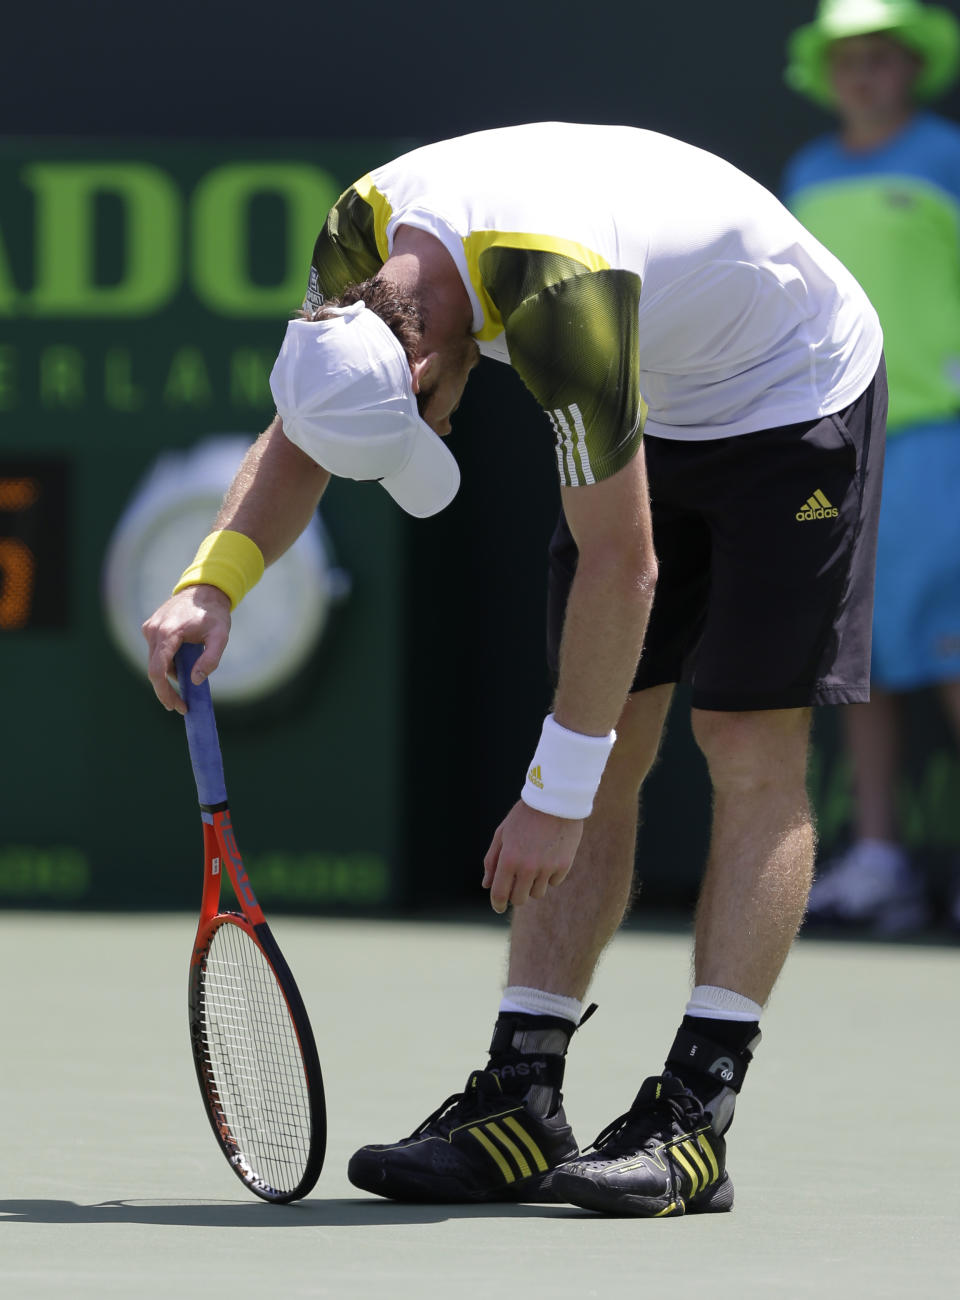 Andy Murray, of Great Britain, reacts during a match against David Ferrer, of Spain, during the final of the Sony Open tennis tournament  Sunday March 31, 2013, in Key Biscayne, Fla. (AP Photo/Wilfredo Lee)